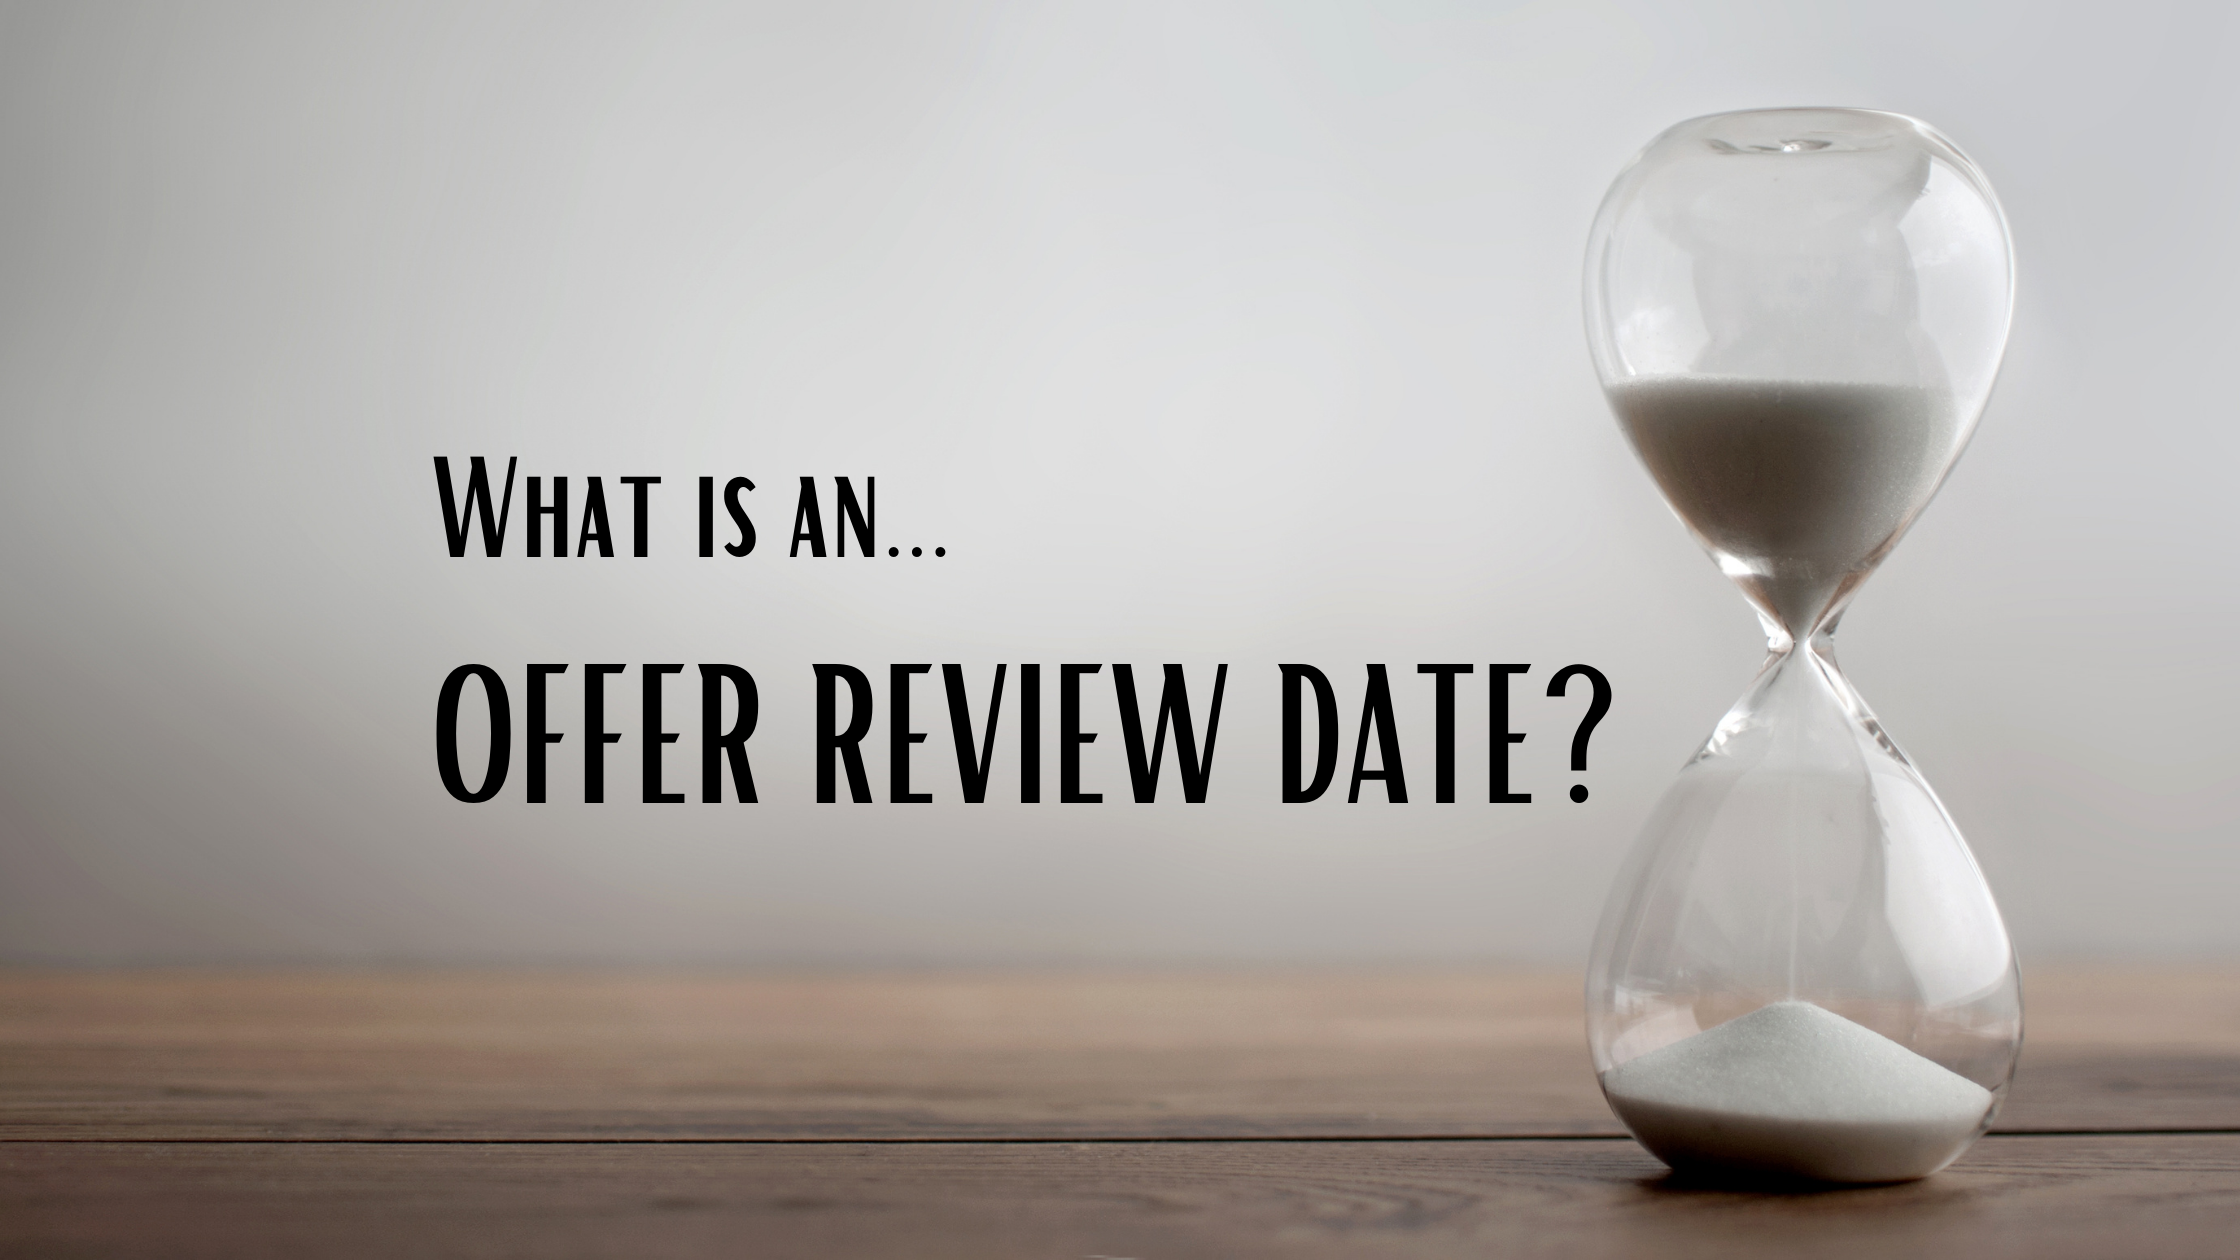 offer review date